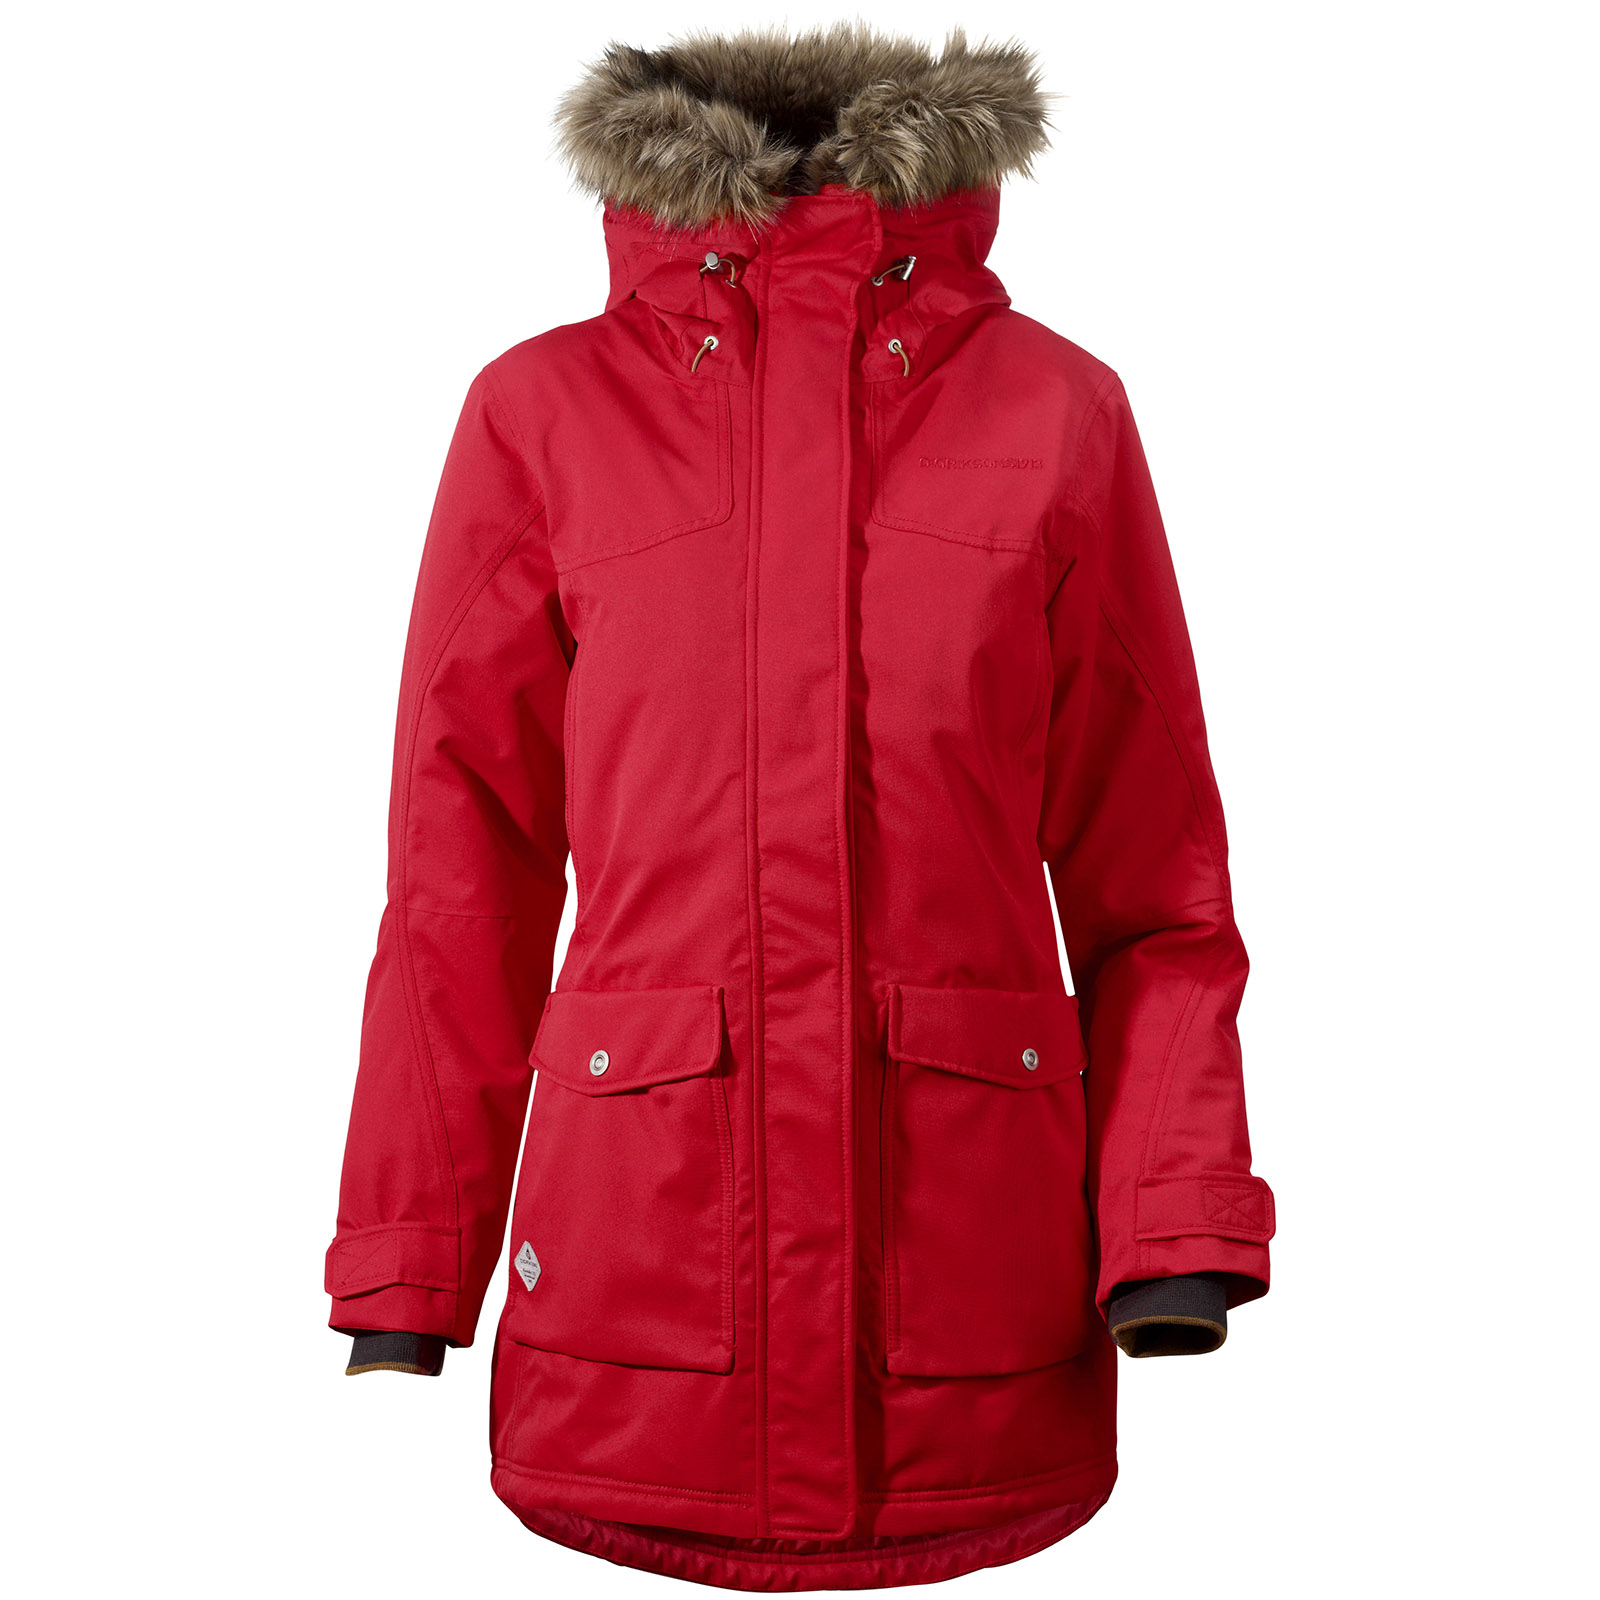 Red jackets for women